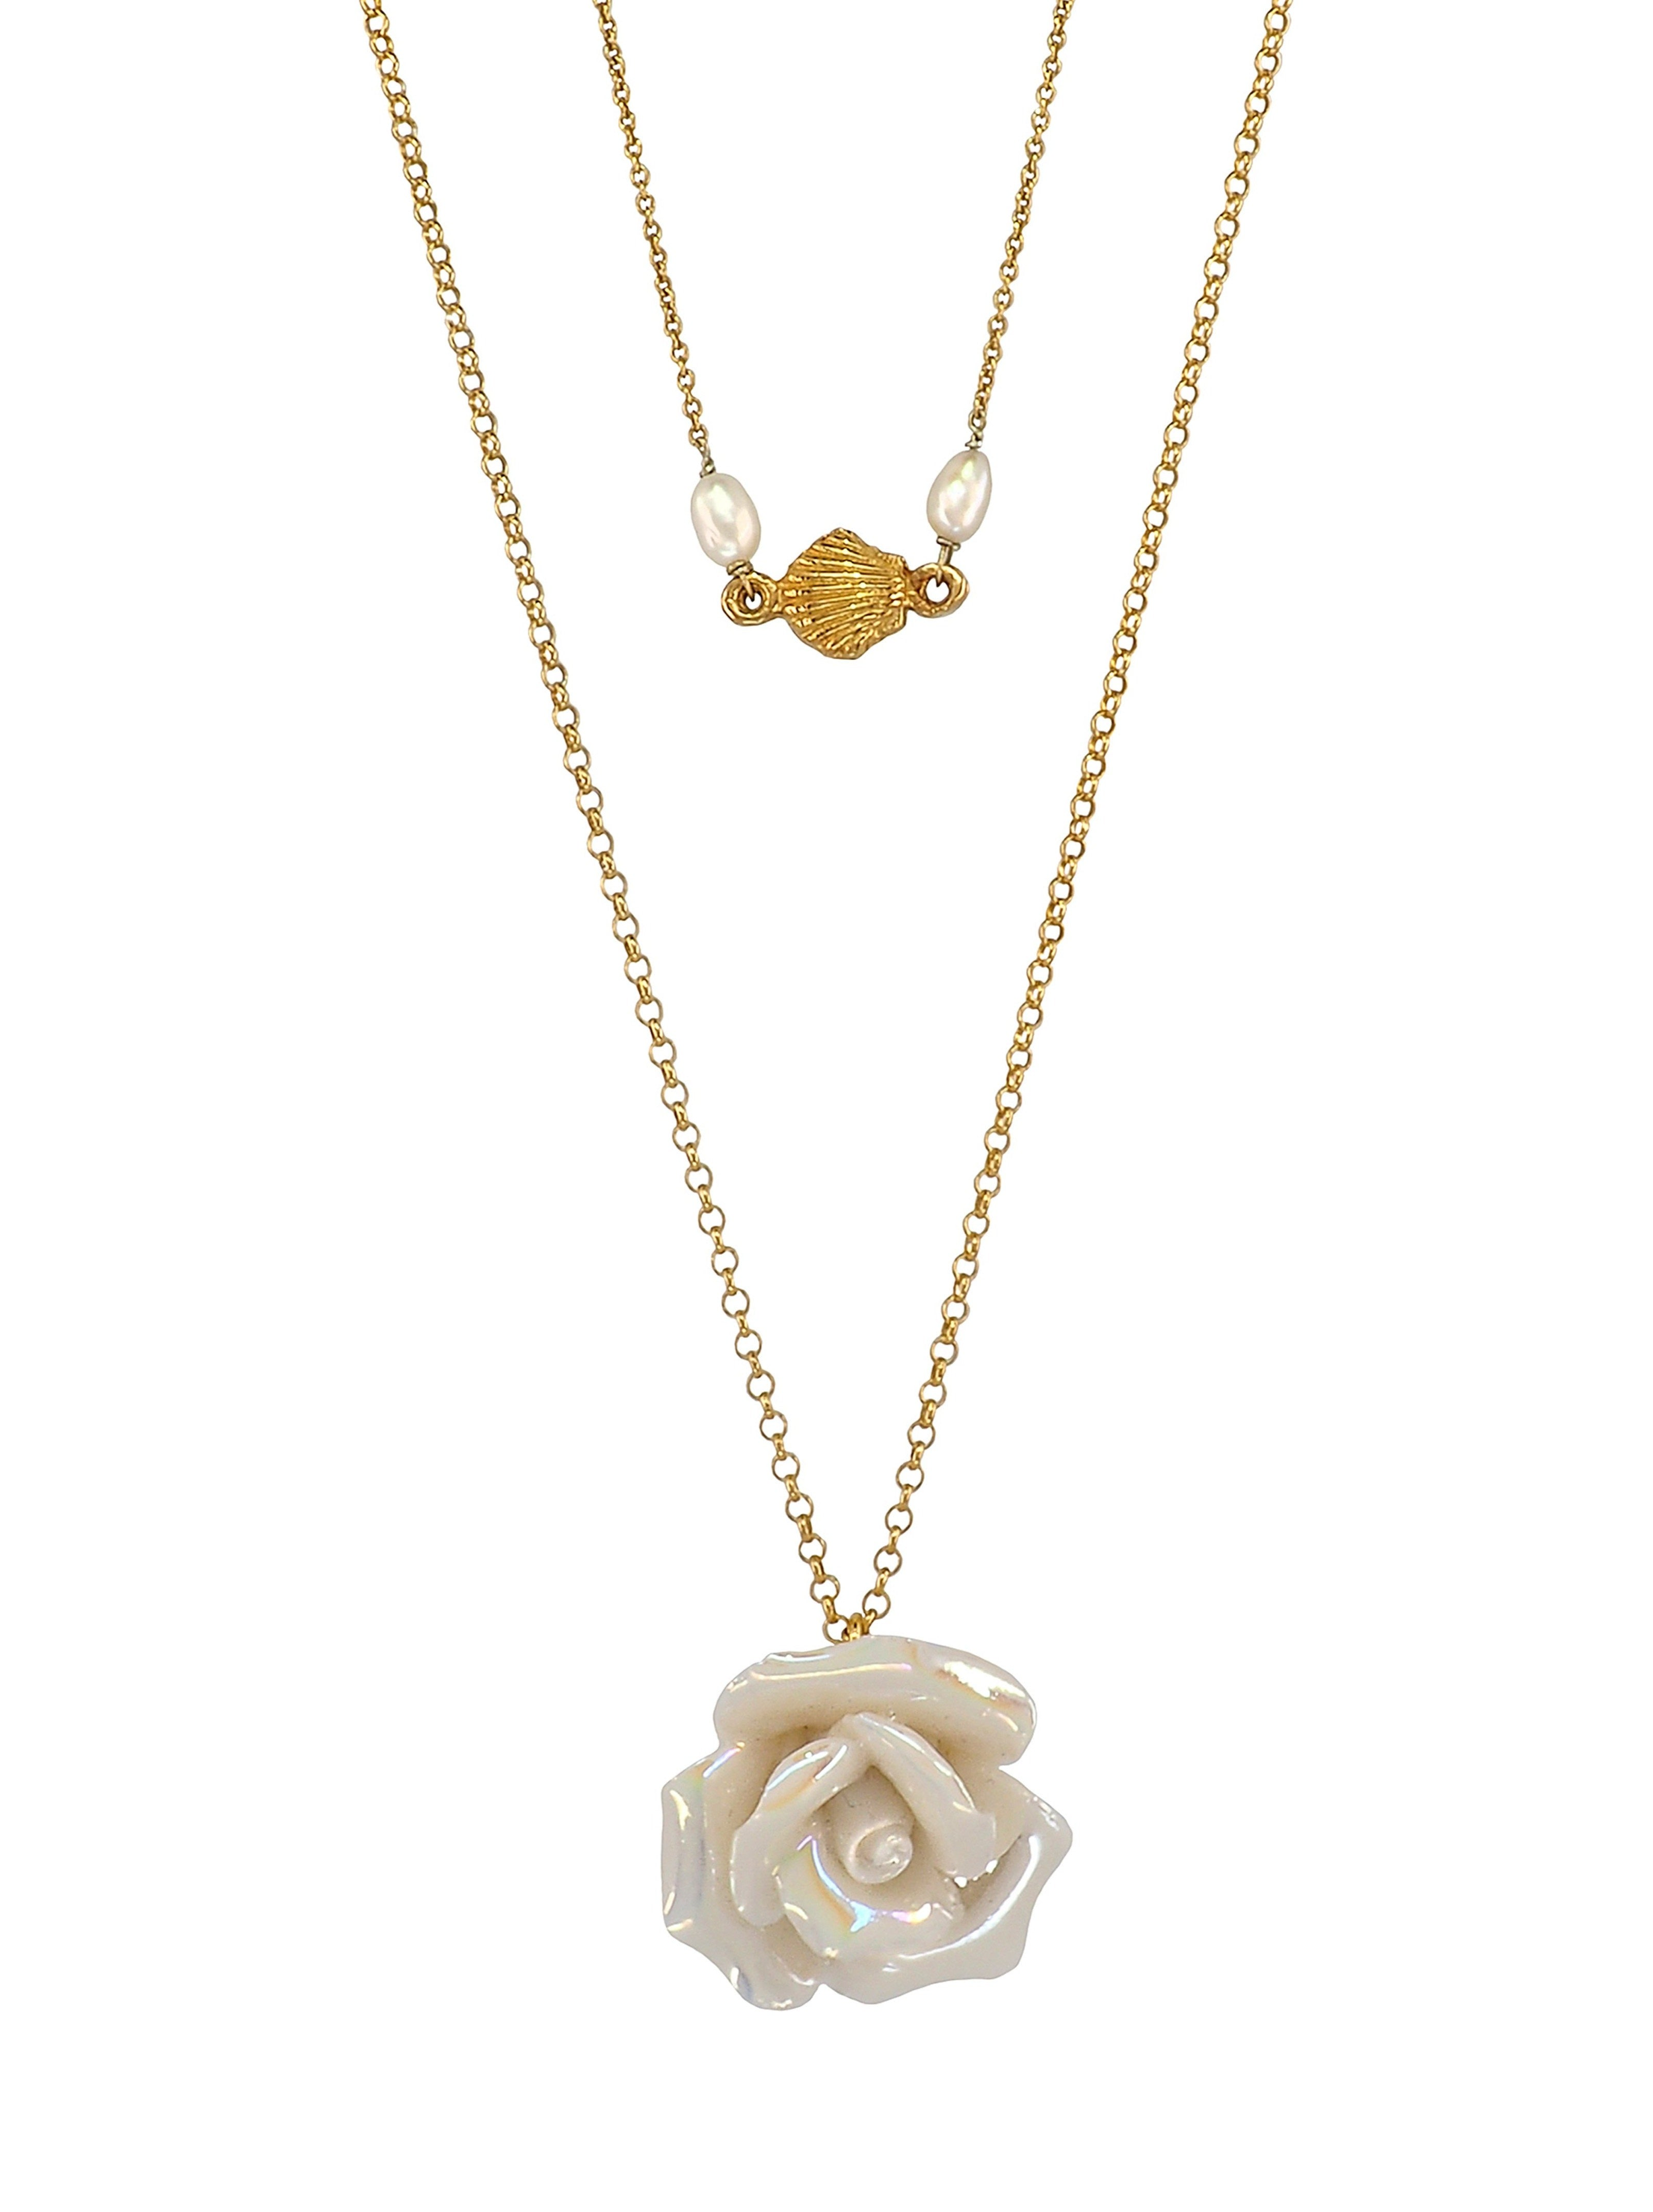 Gorgeous two layered Necklace featuring a stunning 100 year old handmade ceramic Rose and a dainty Shell combined with two natural Freshwater Pearls. All the Metalwork is made of Gold Plated 925 Silver.